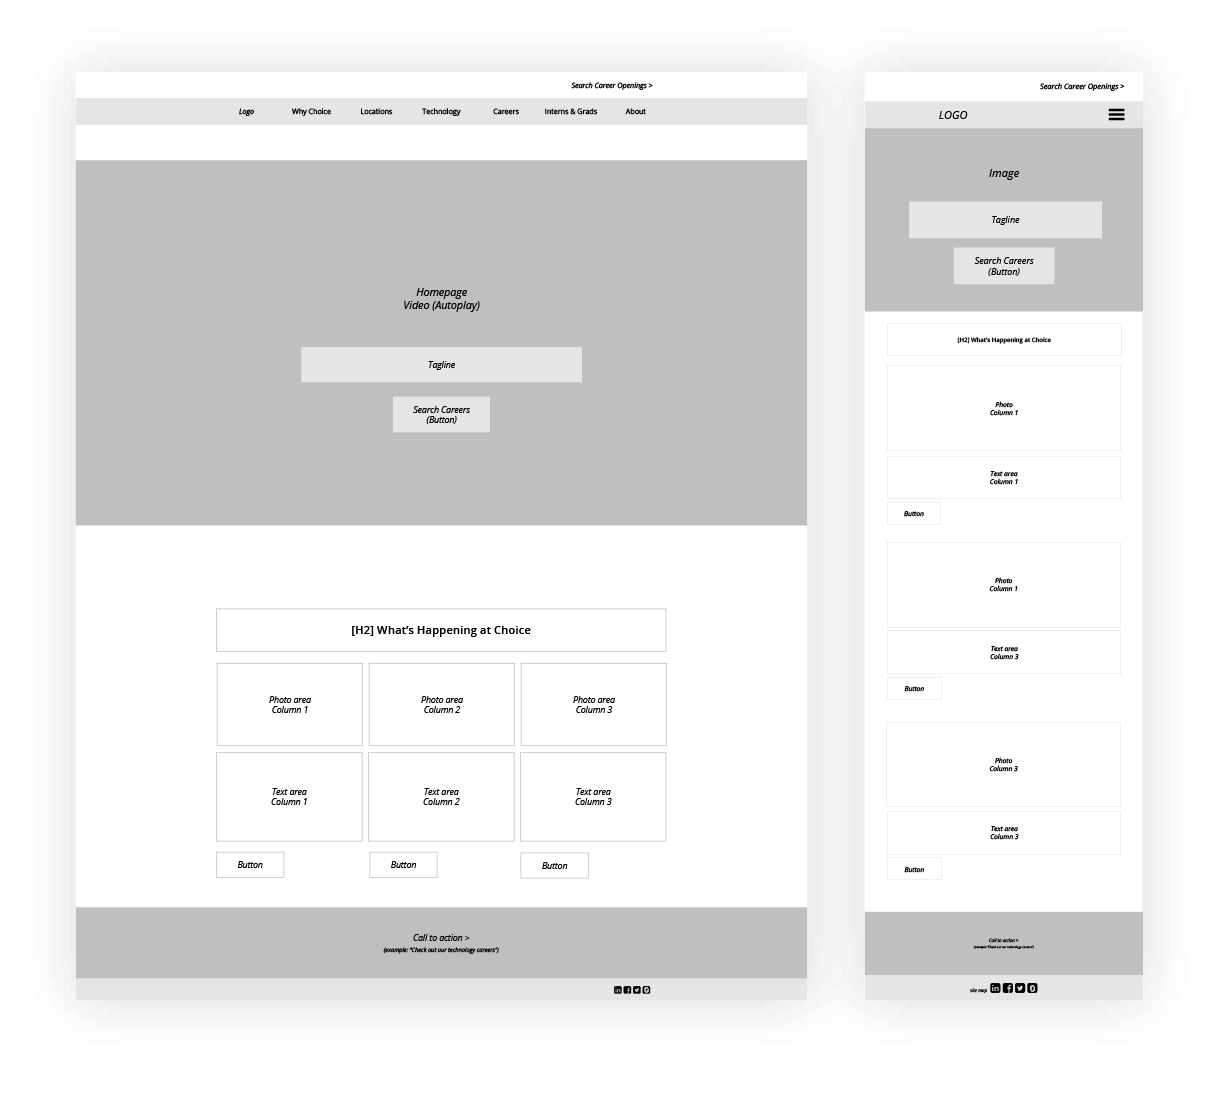 Wireframe outline for the website homepage.